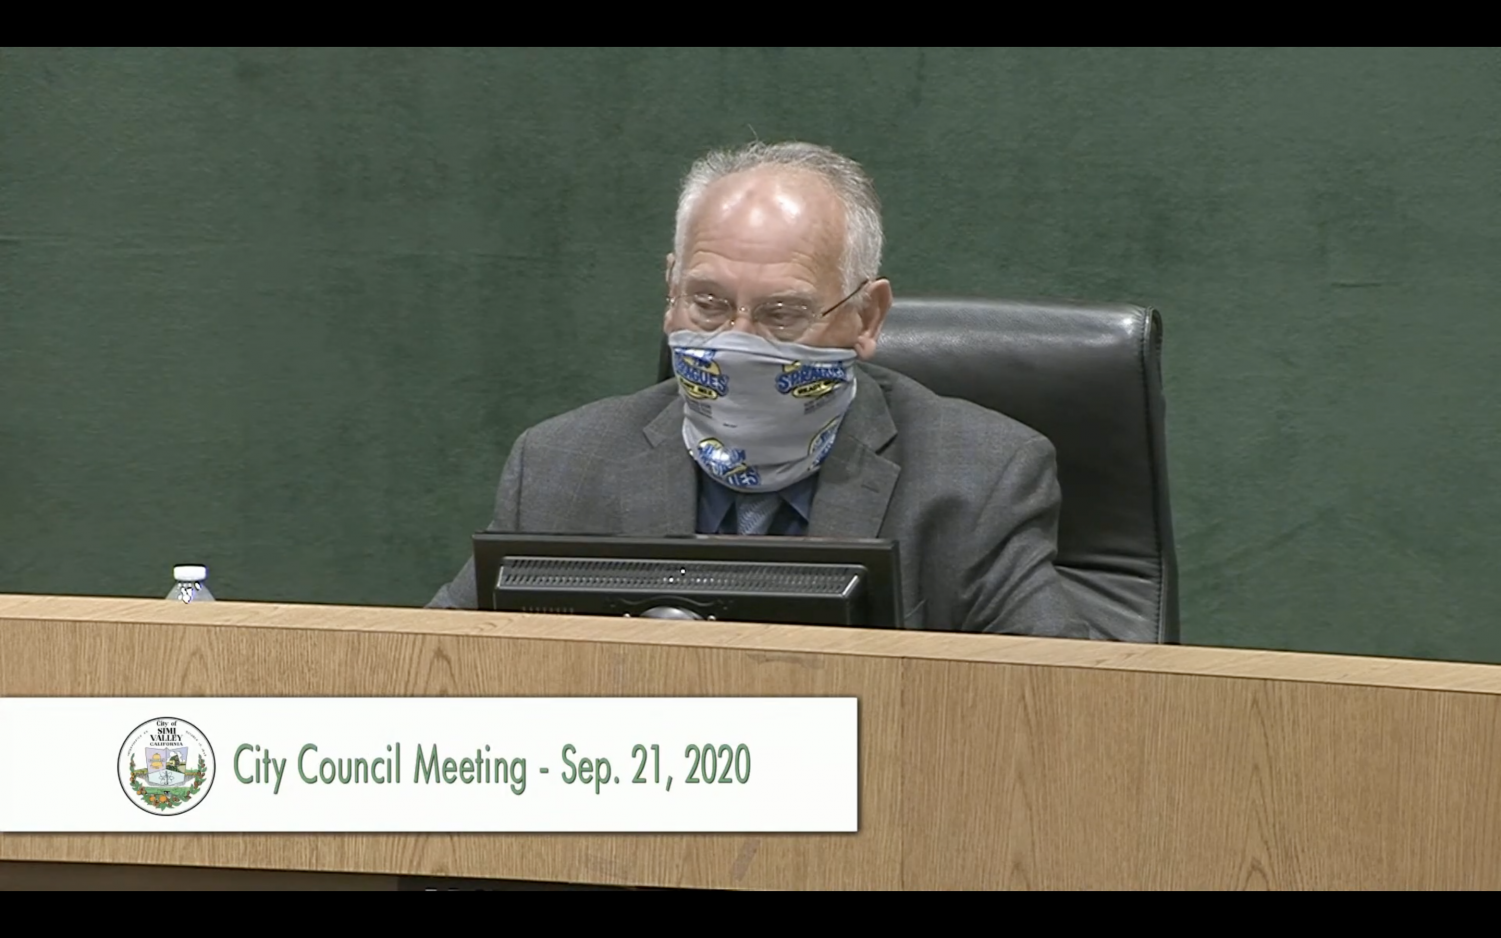 Simi Valley Mayor Keith Mashburn starts the City Council meetong on Sept. 21, in Simi Valley, CA.